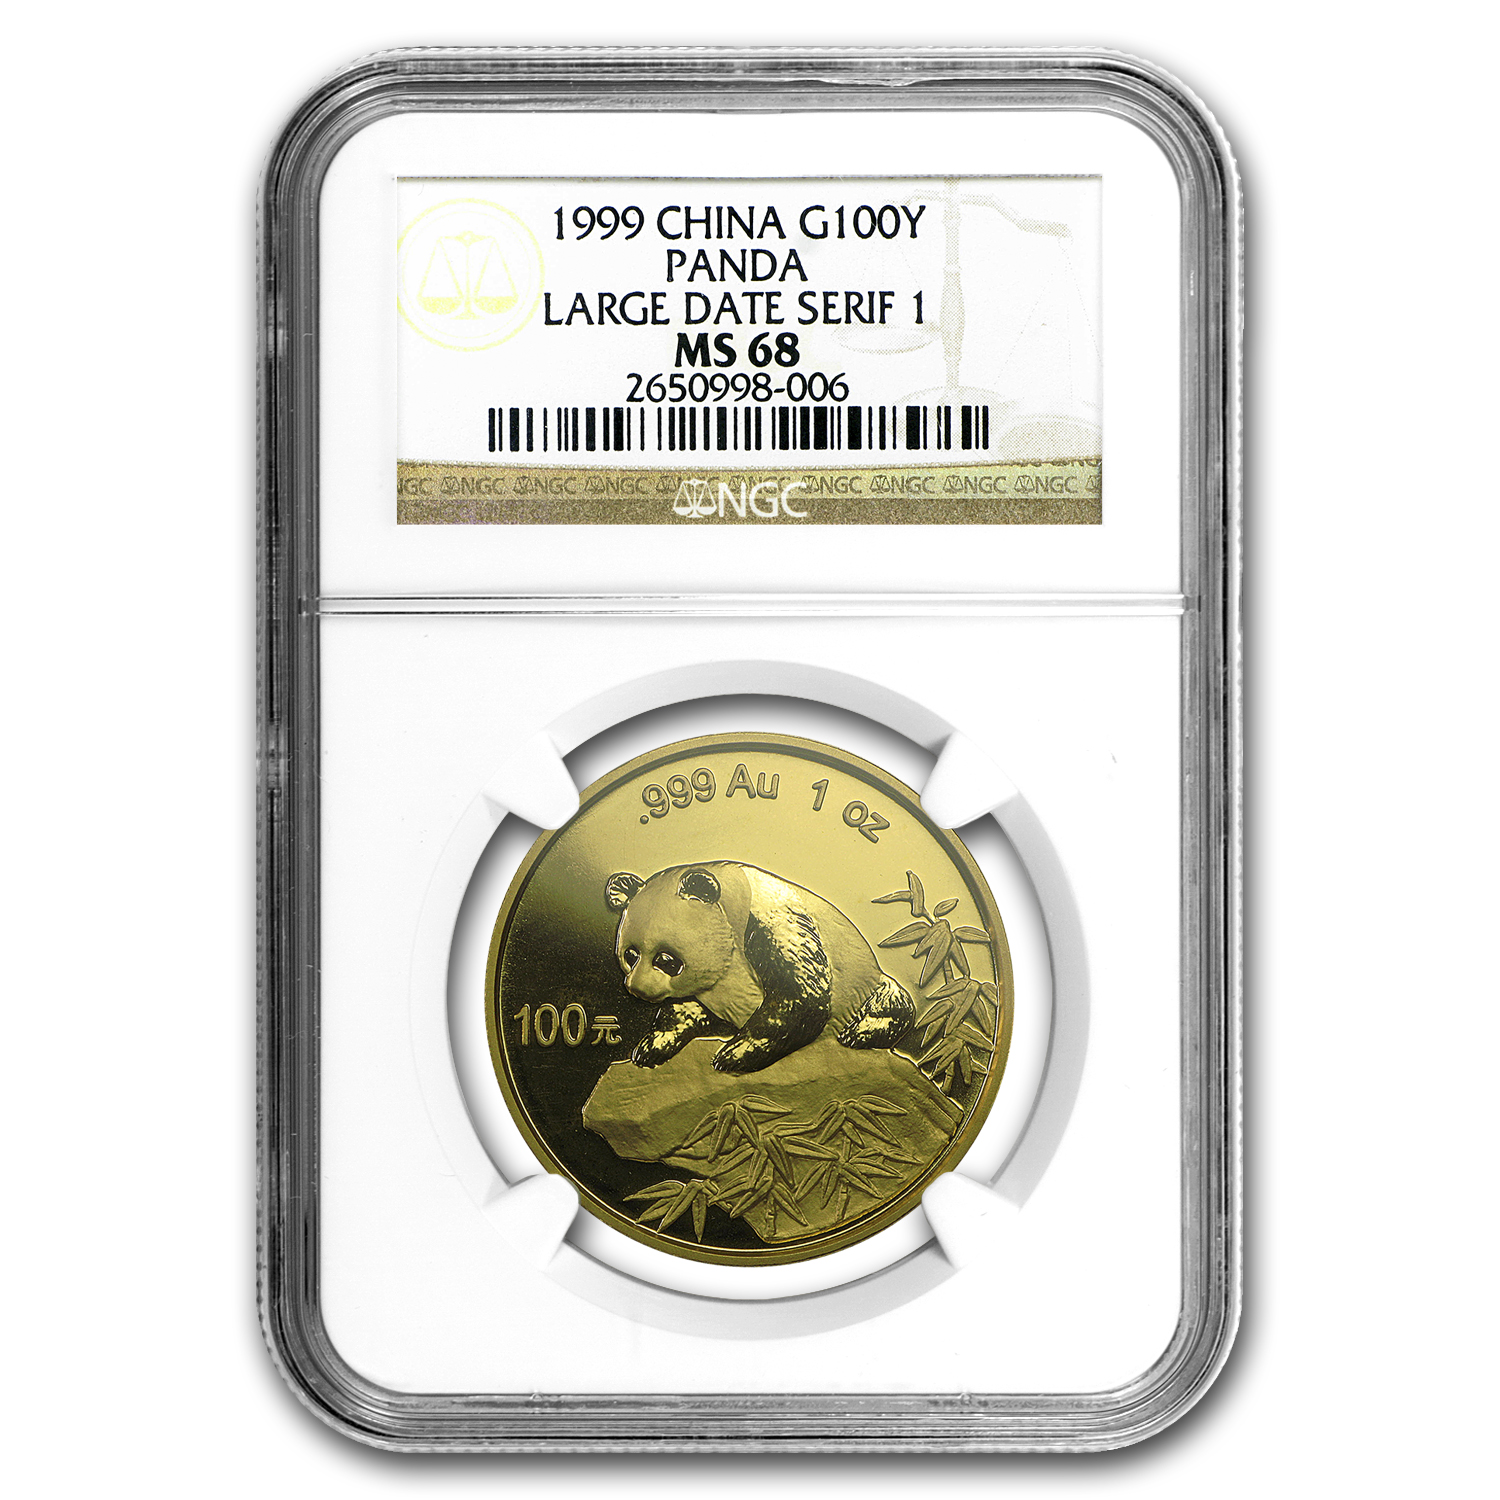 1999 China 1 oz Gold Panda Large Date/Serif 1 MS-68 NGC